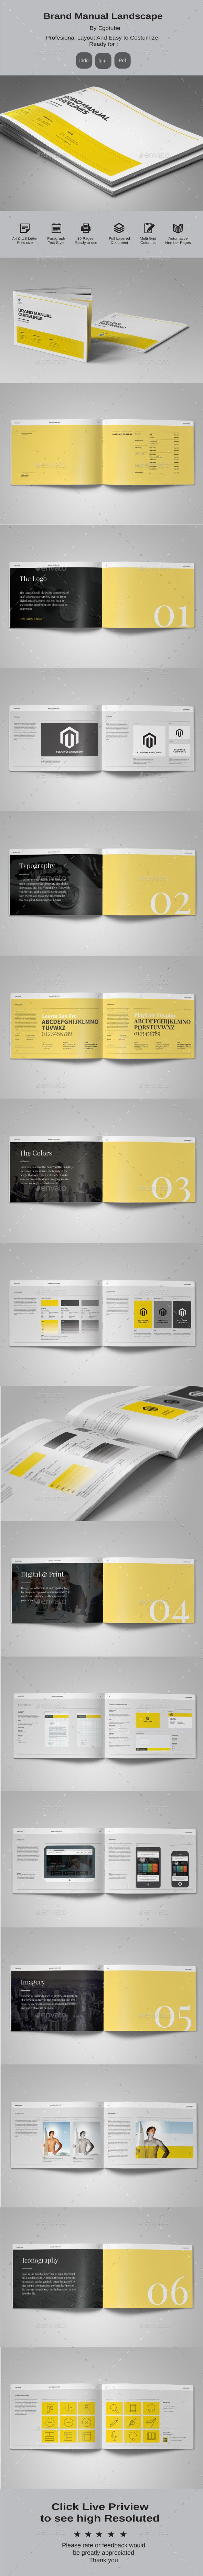 Brand Manual Template Indesign Indd Download Here Http